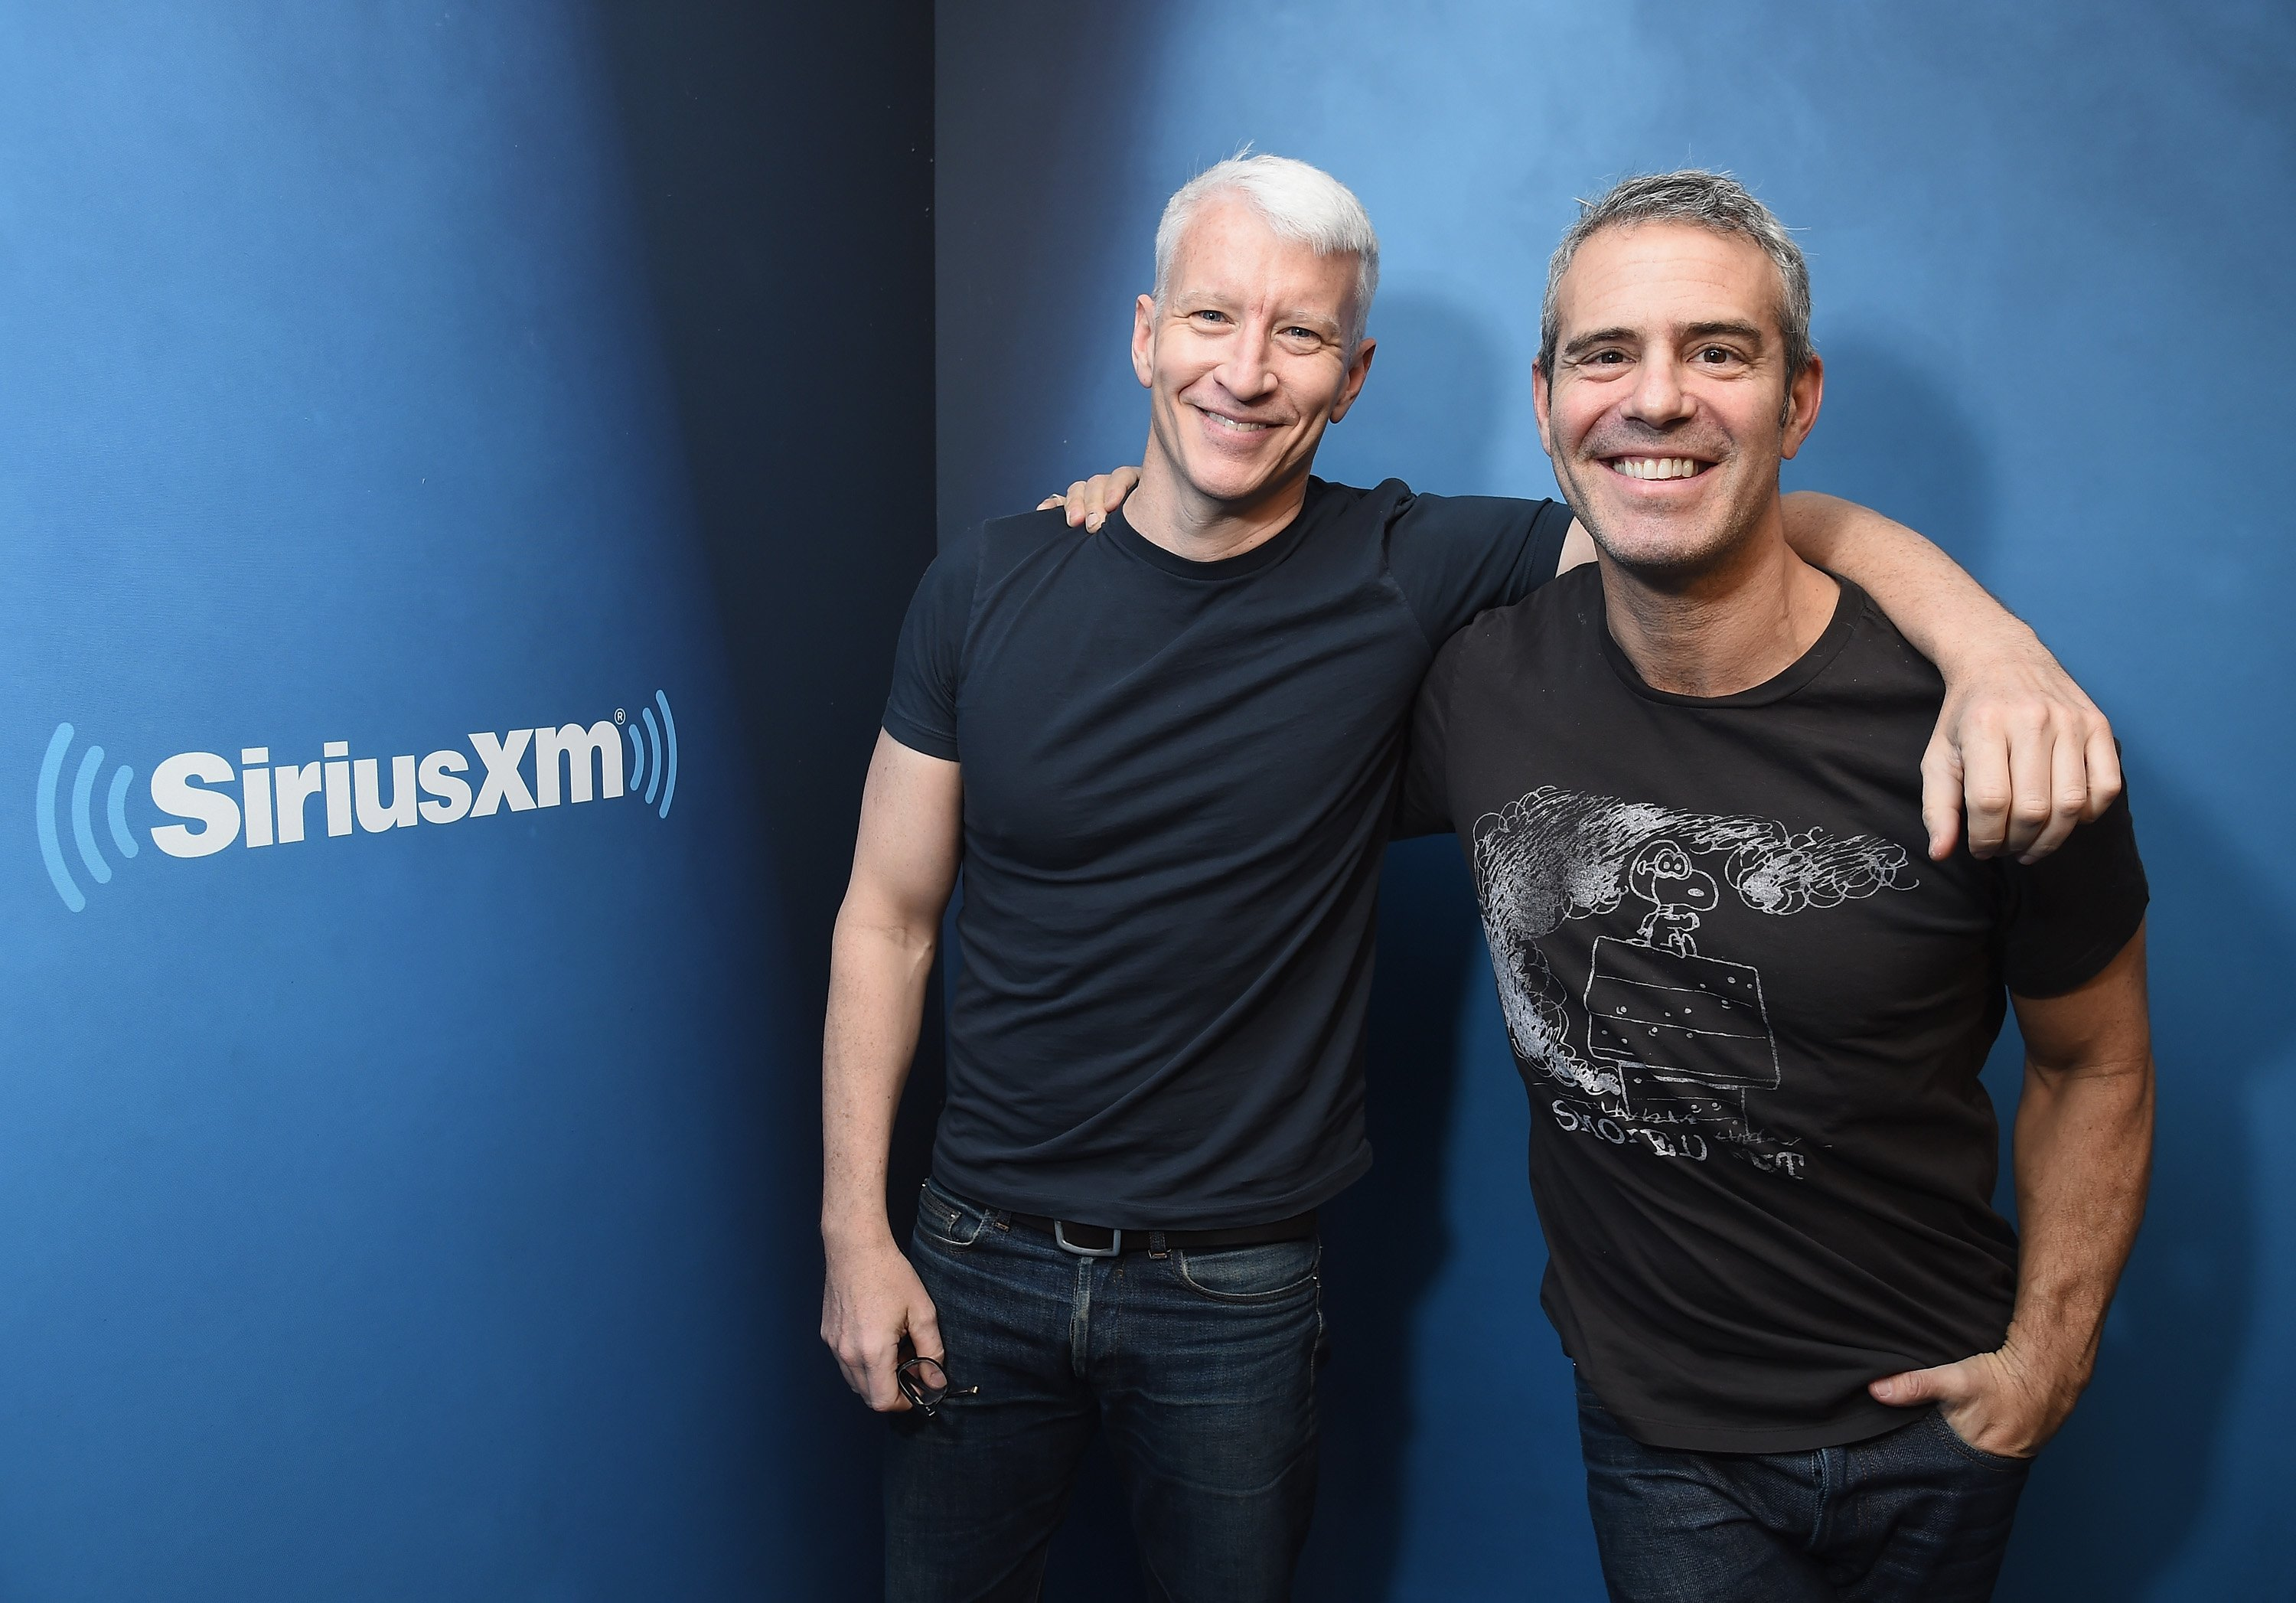 Anderson Cooper and host Andy Cohen at SiriusXM Studios on January 13, 2017, in New York City. | Source: Getty Images.